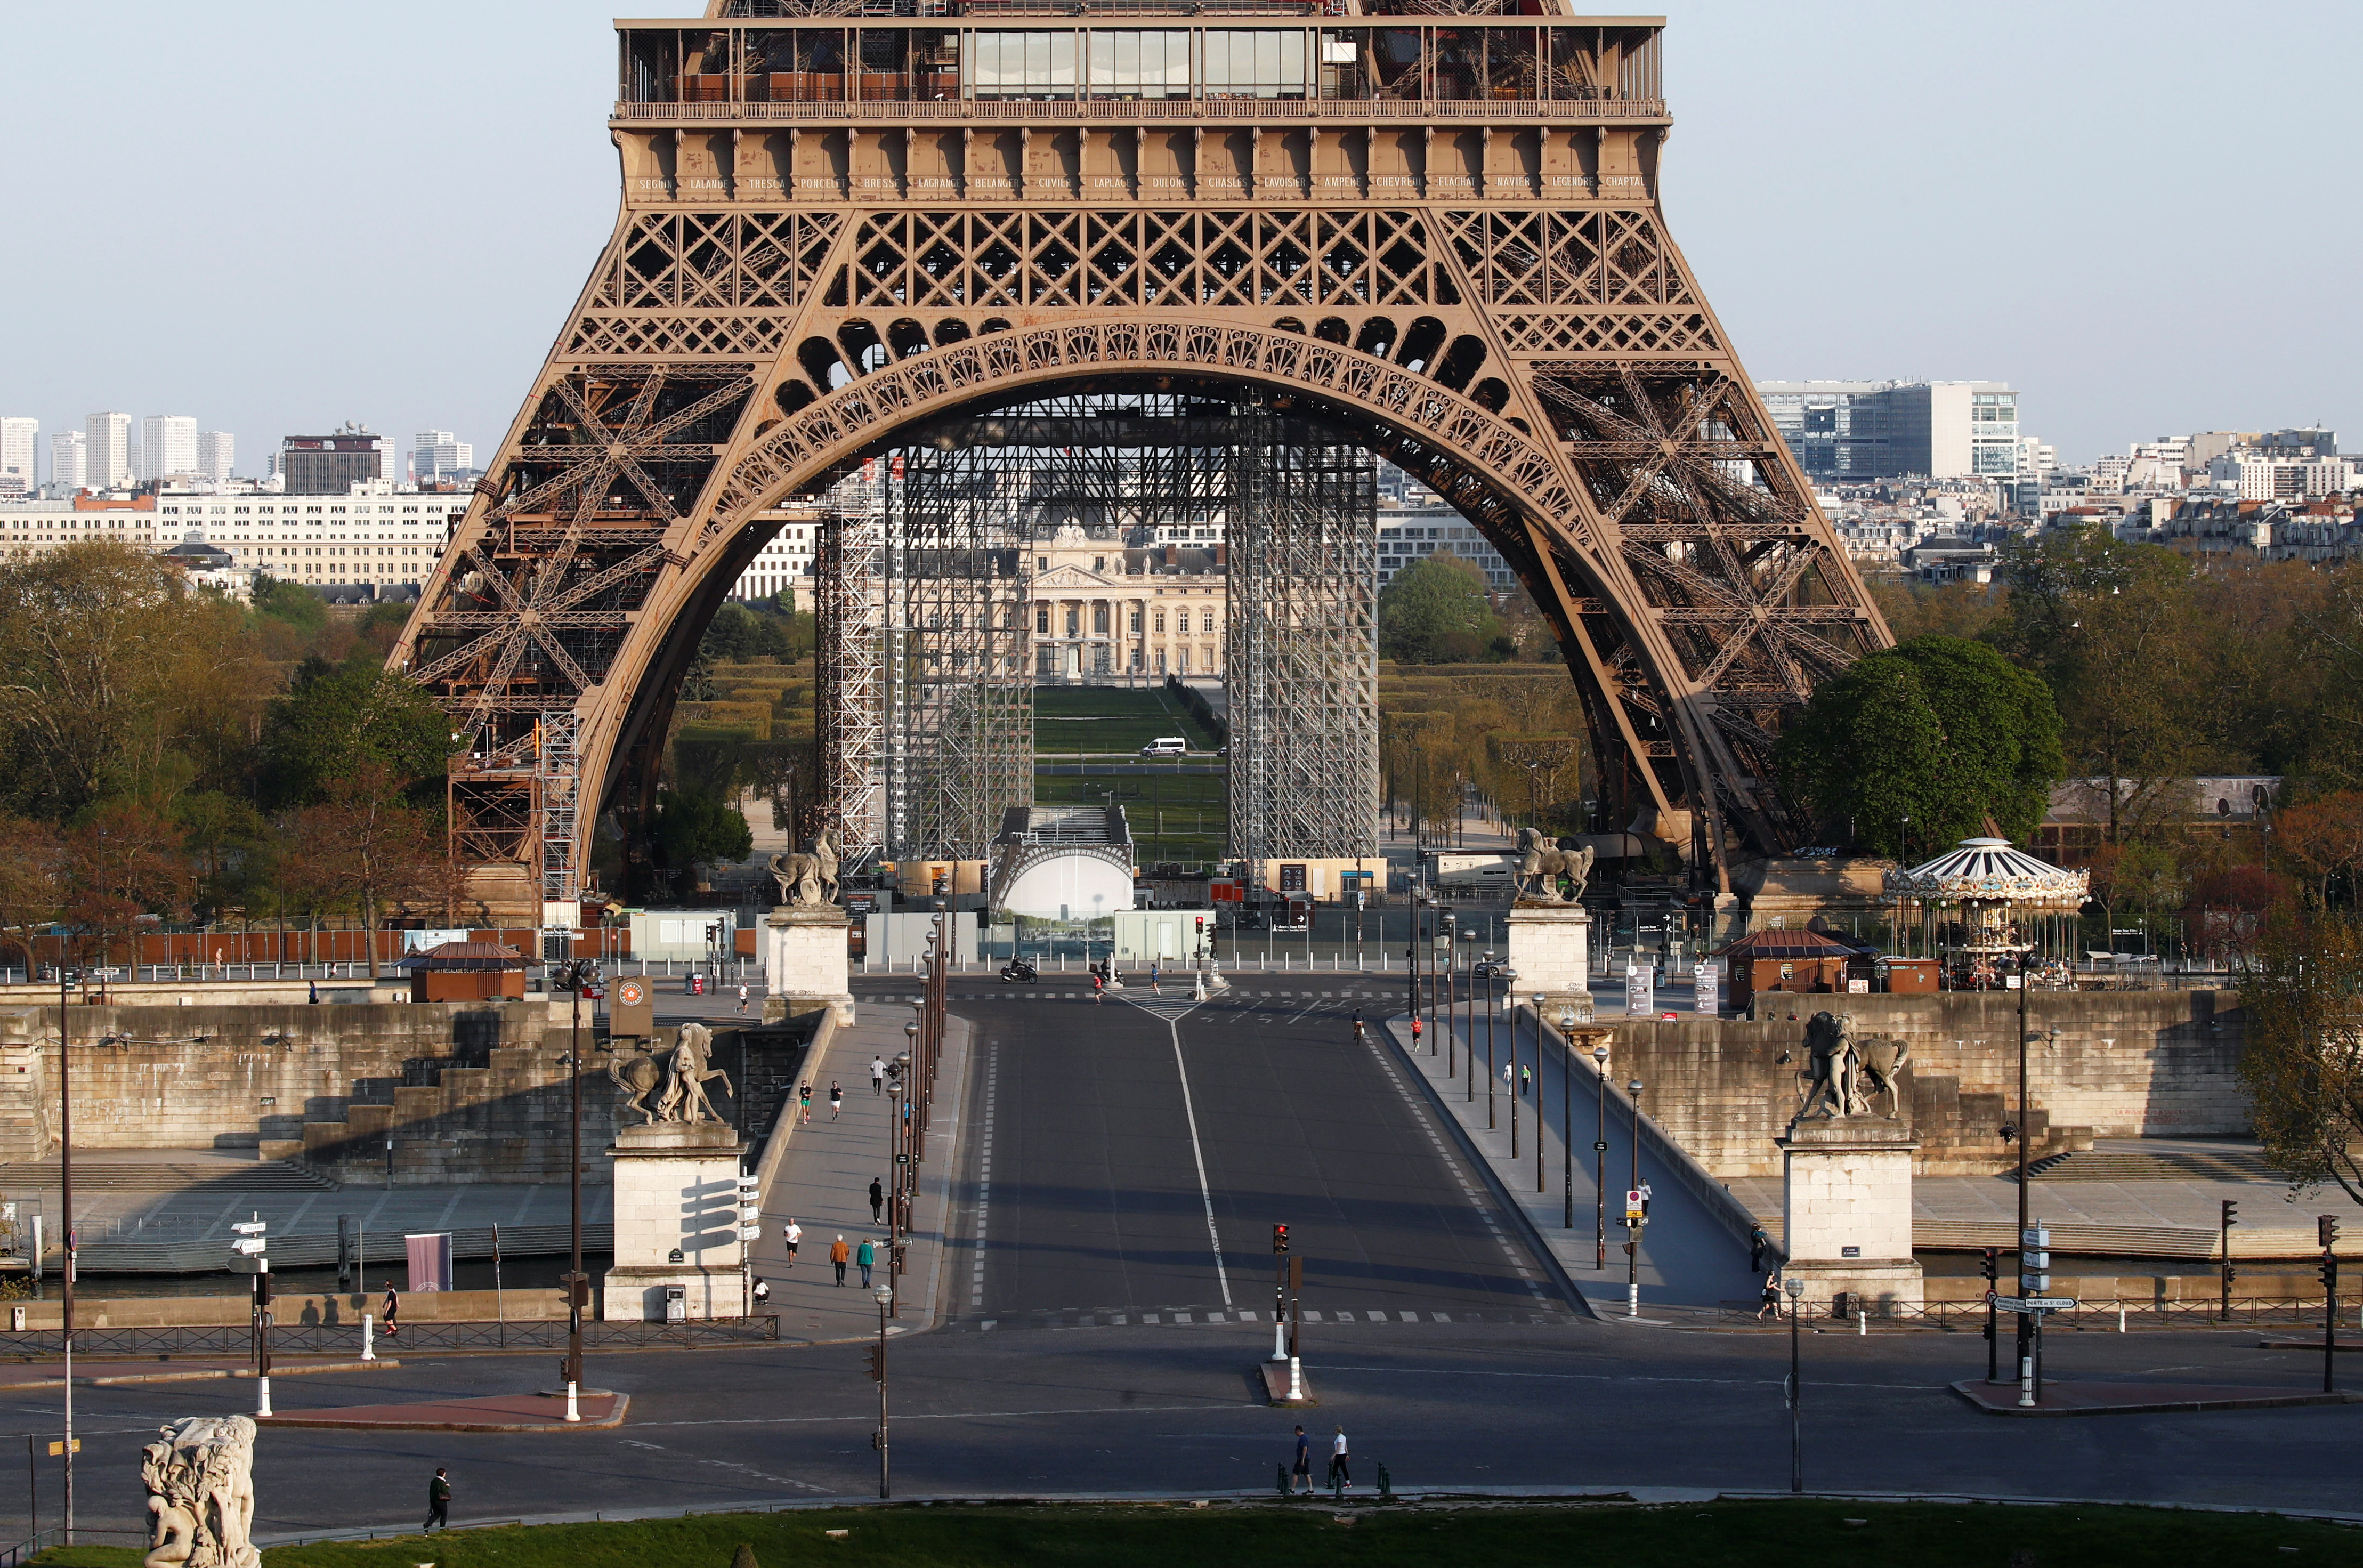 A view shows the deserted Iena Bridge near the Eiffel Tower in Paris, during a lockdown imposed to slow the spread of the coronavirus disease (COVID-19) in France, April 8, 2020. Photo: Reuters